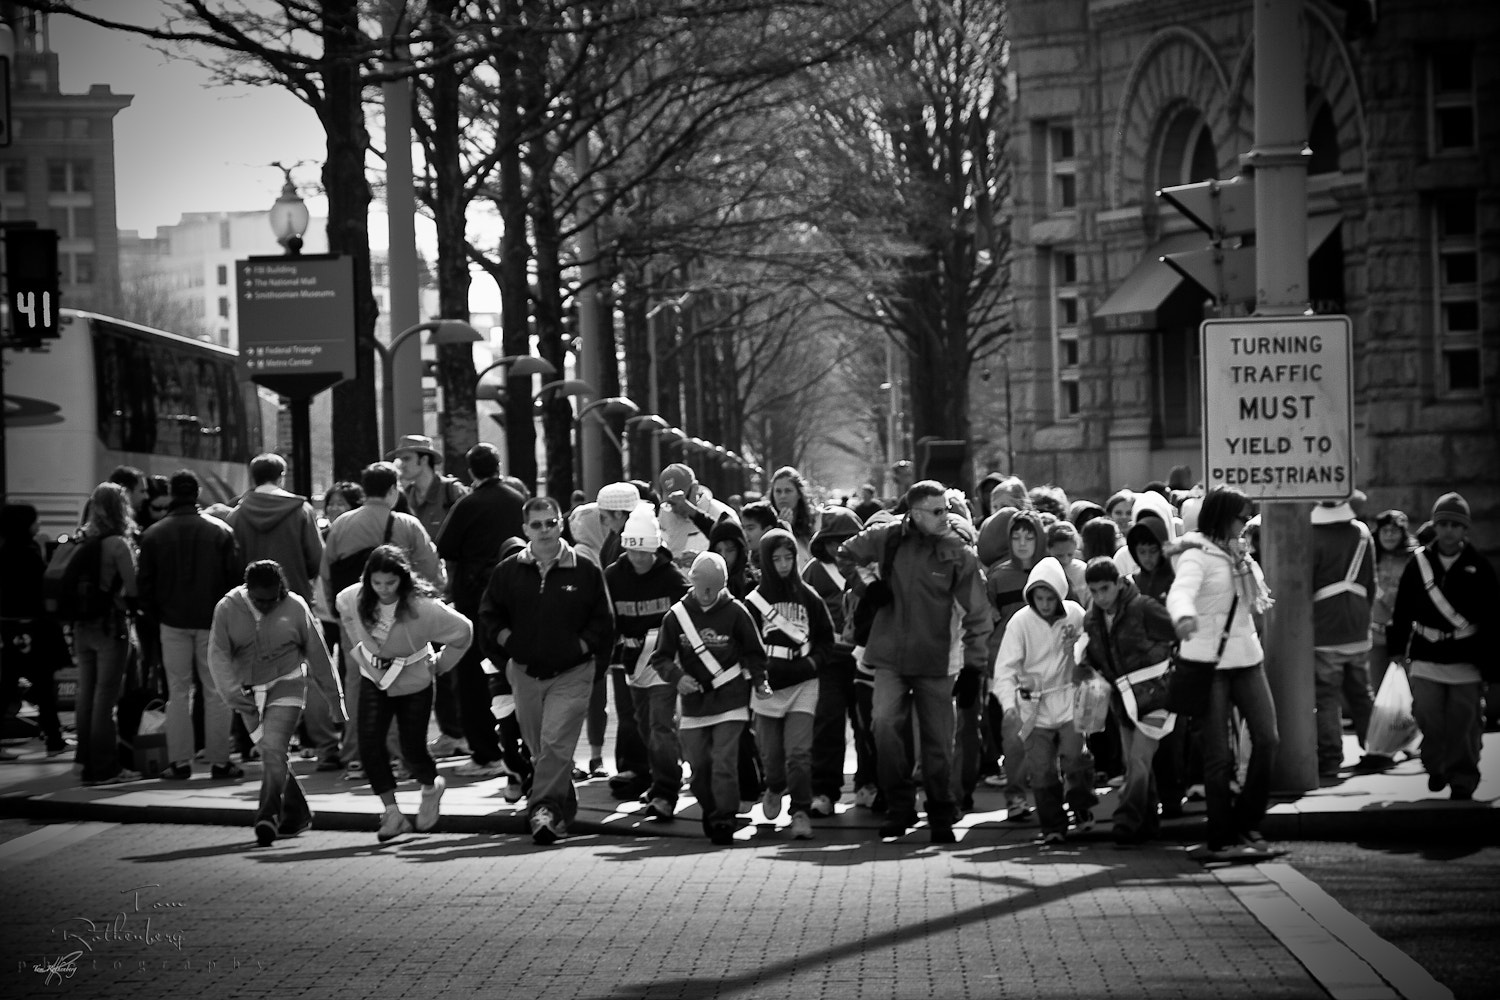 Photograph safety in numbers by Tom Rothenberg on 500px